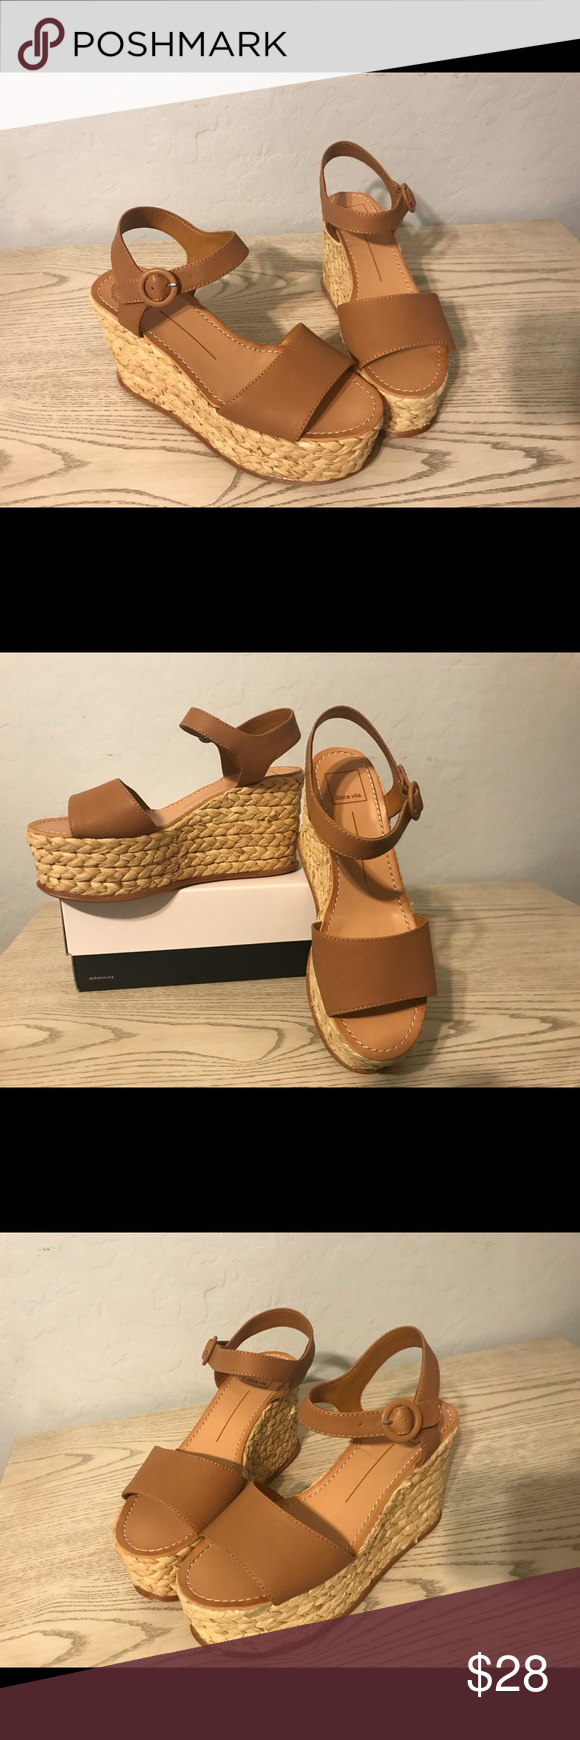 8e907d392dd Dolce Vita Dane Espadrilles Leather Wedge Sandals Never been worn ...